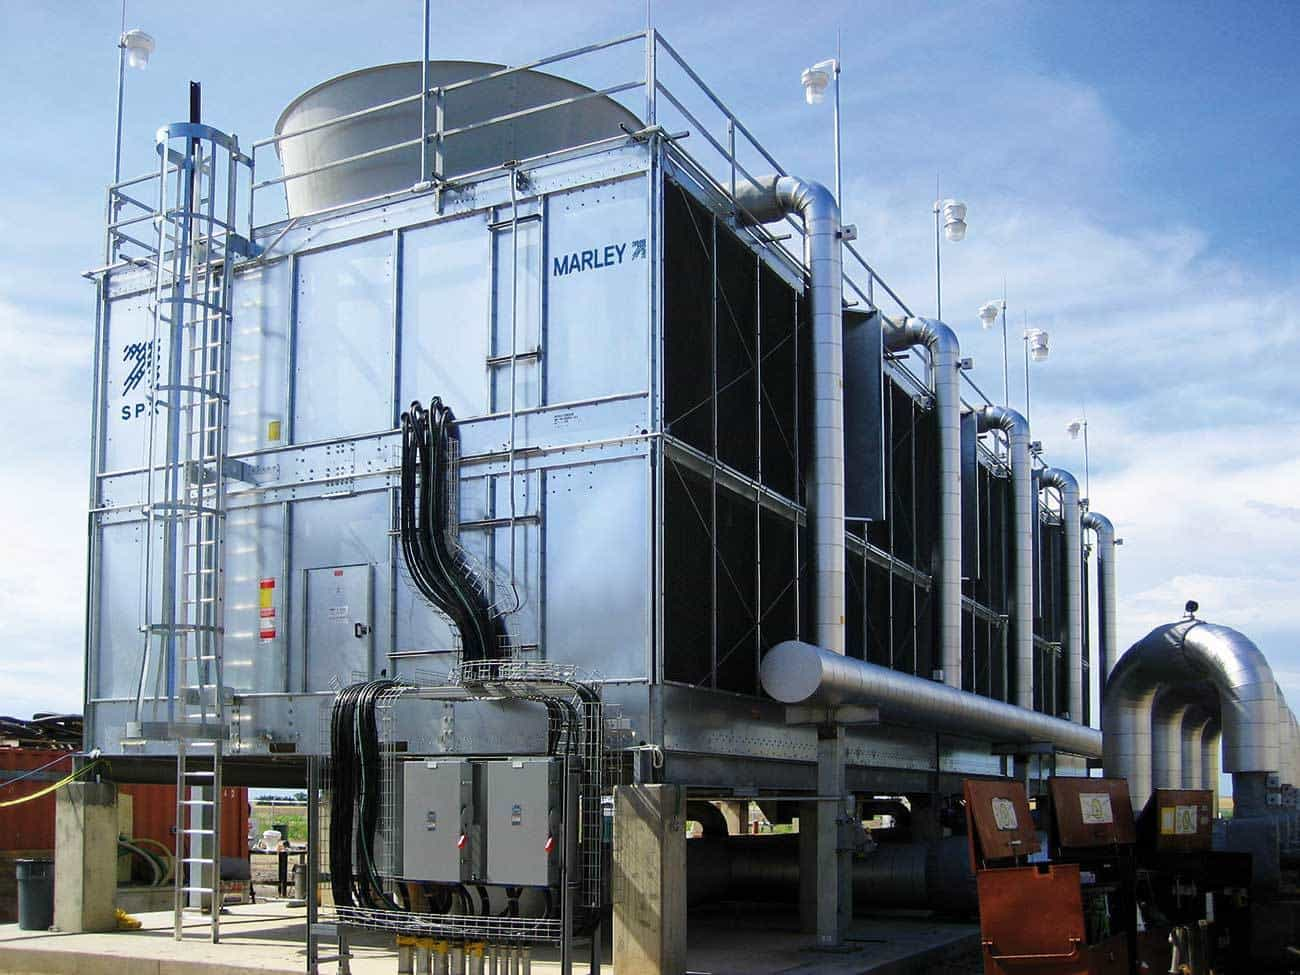 Cooling towers and the need for loss prevention ...